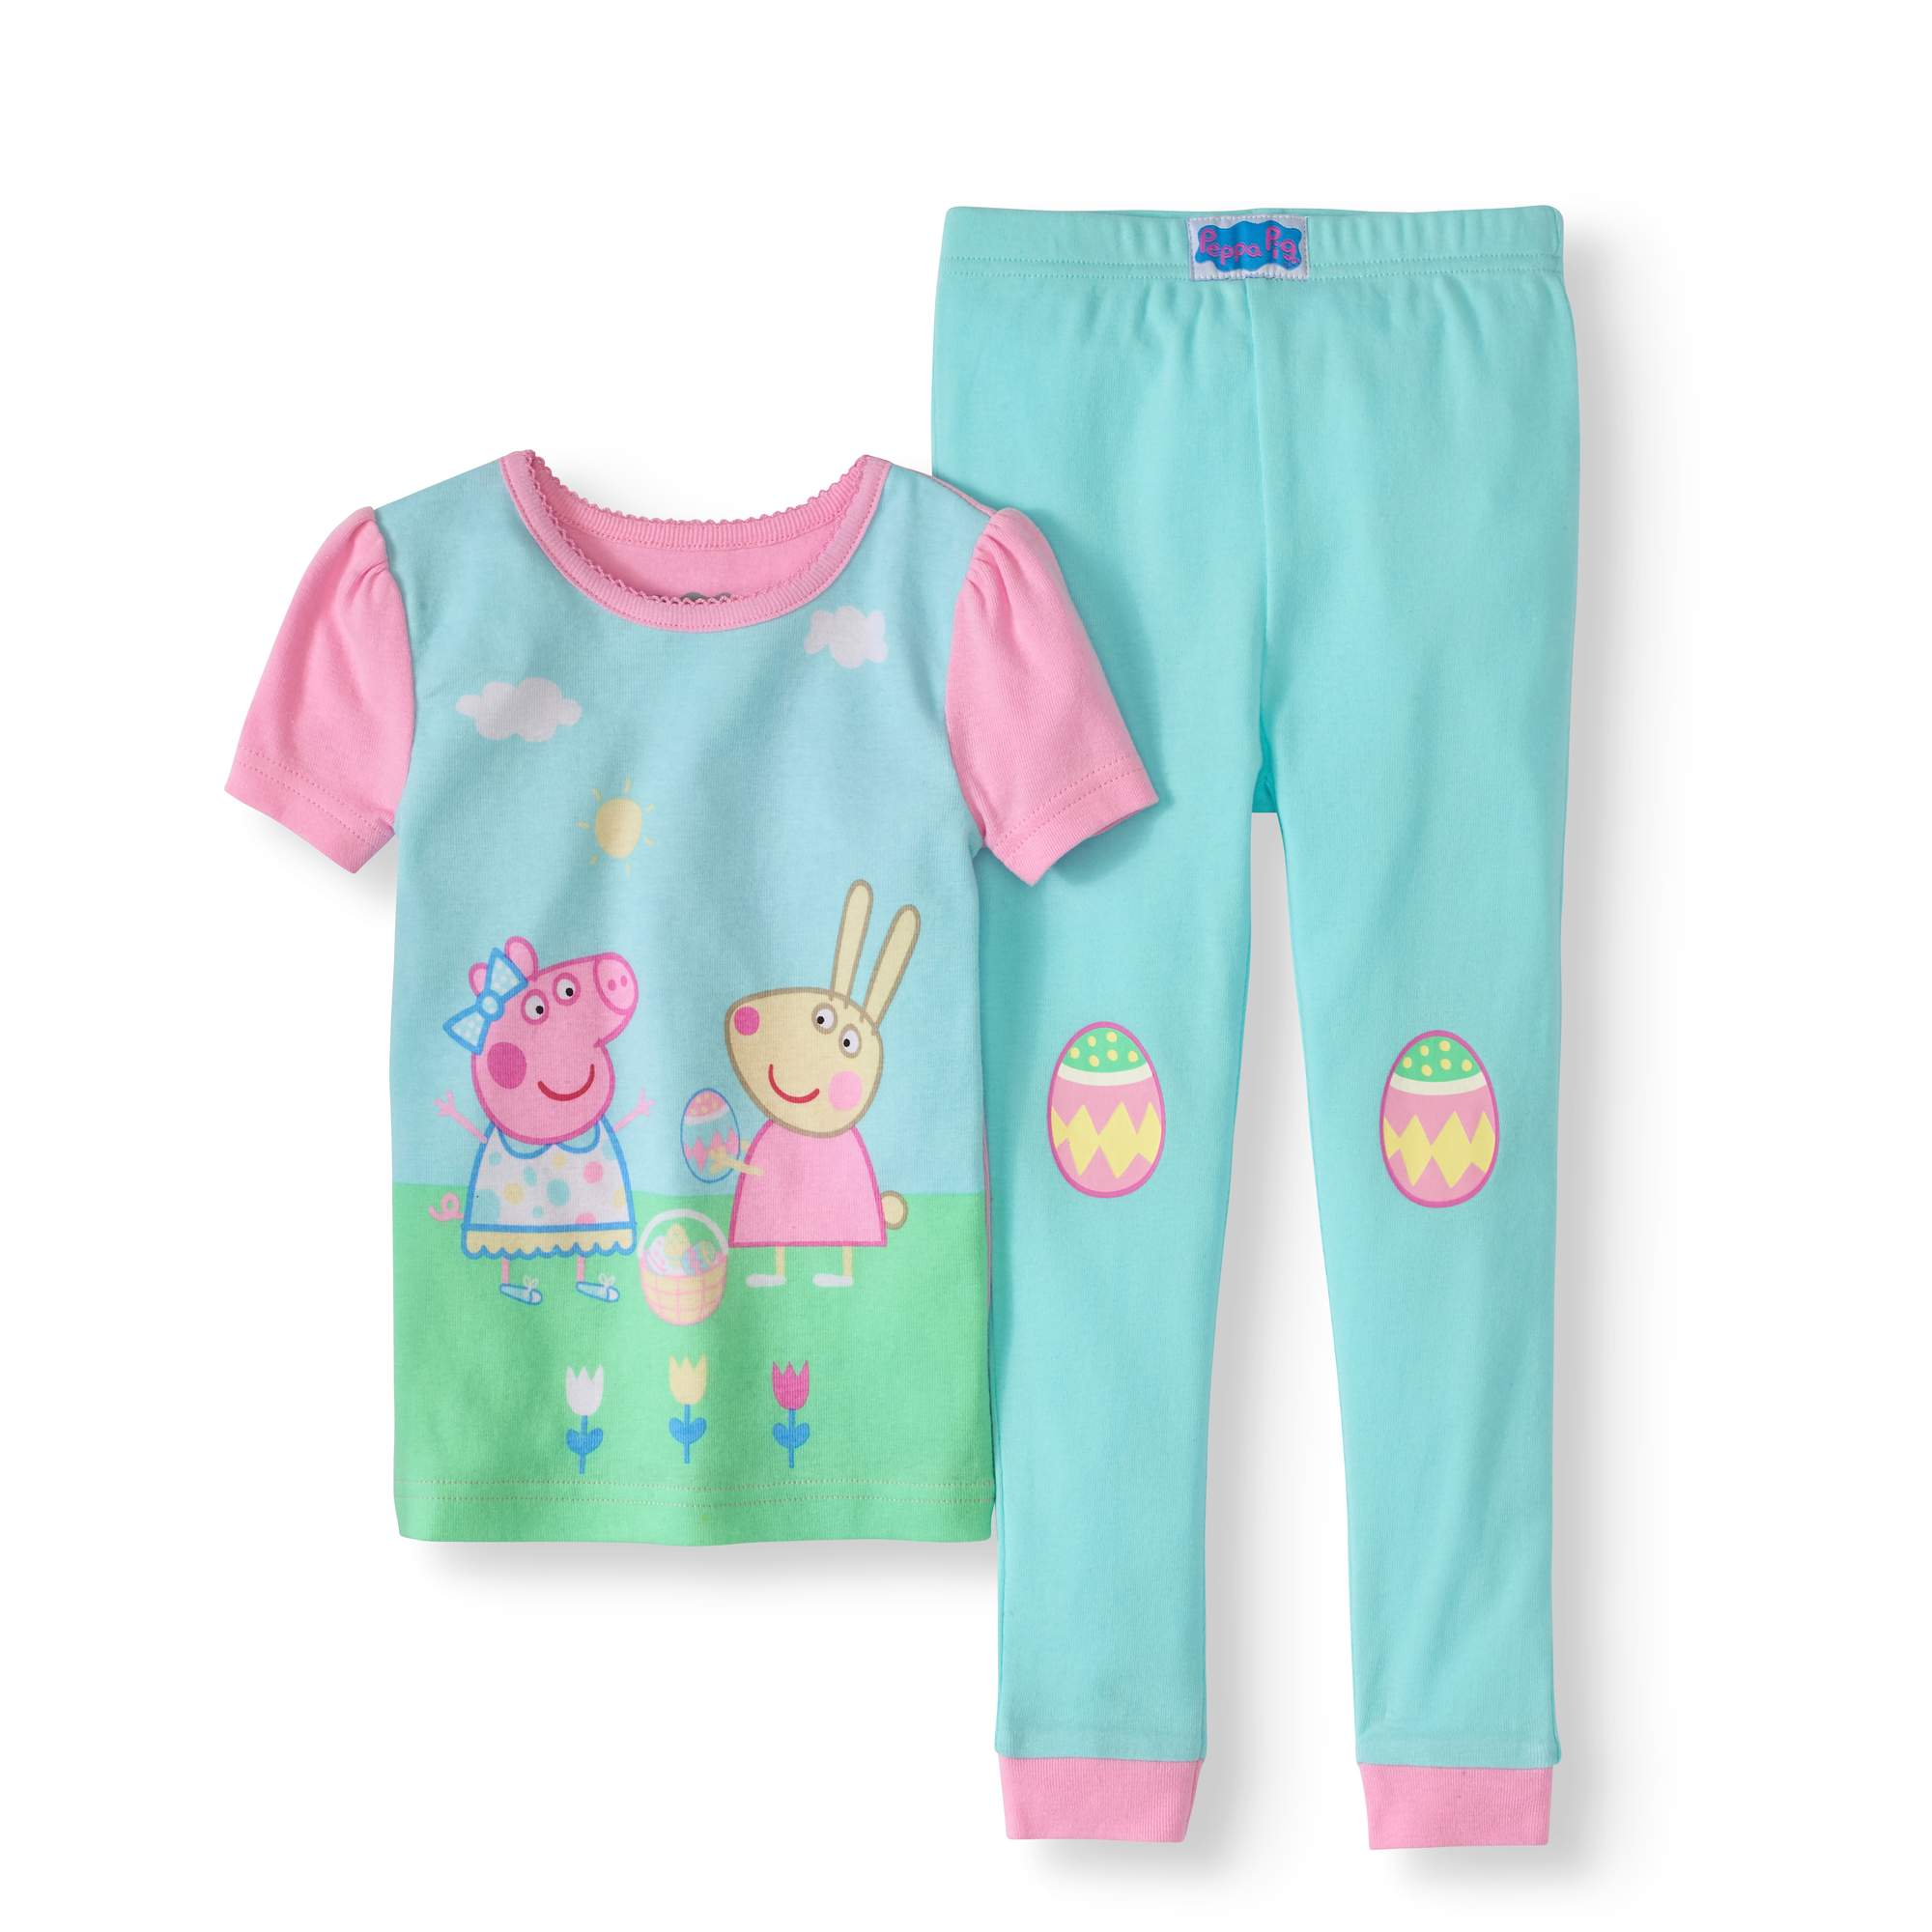 Peppa Pig Girls Toddler Easter 2 Piece Cotton Set